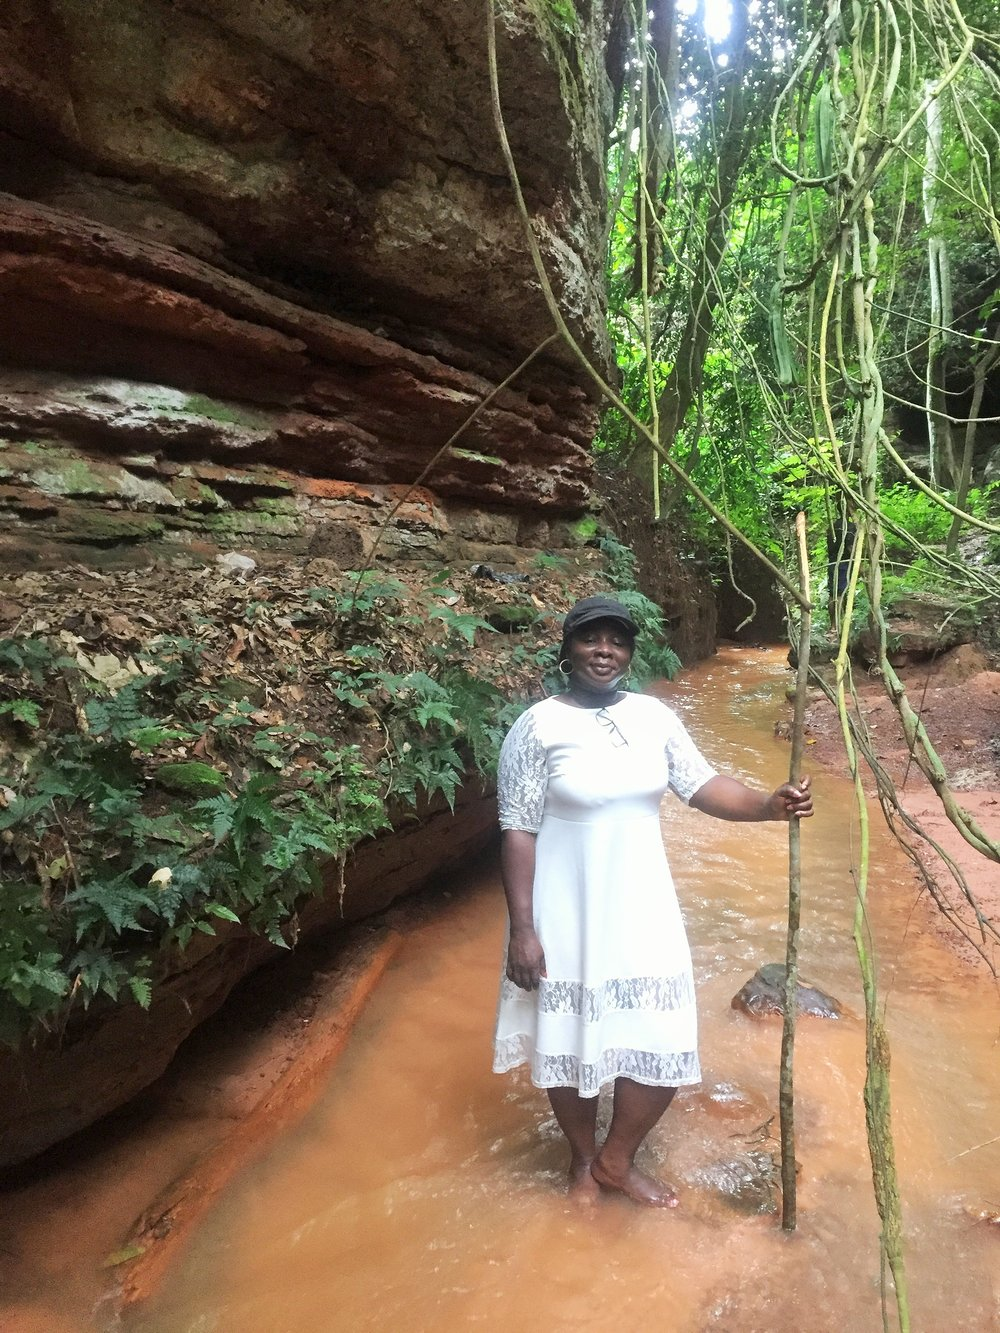 Awhum waterfalls | The AJALA BUG